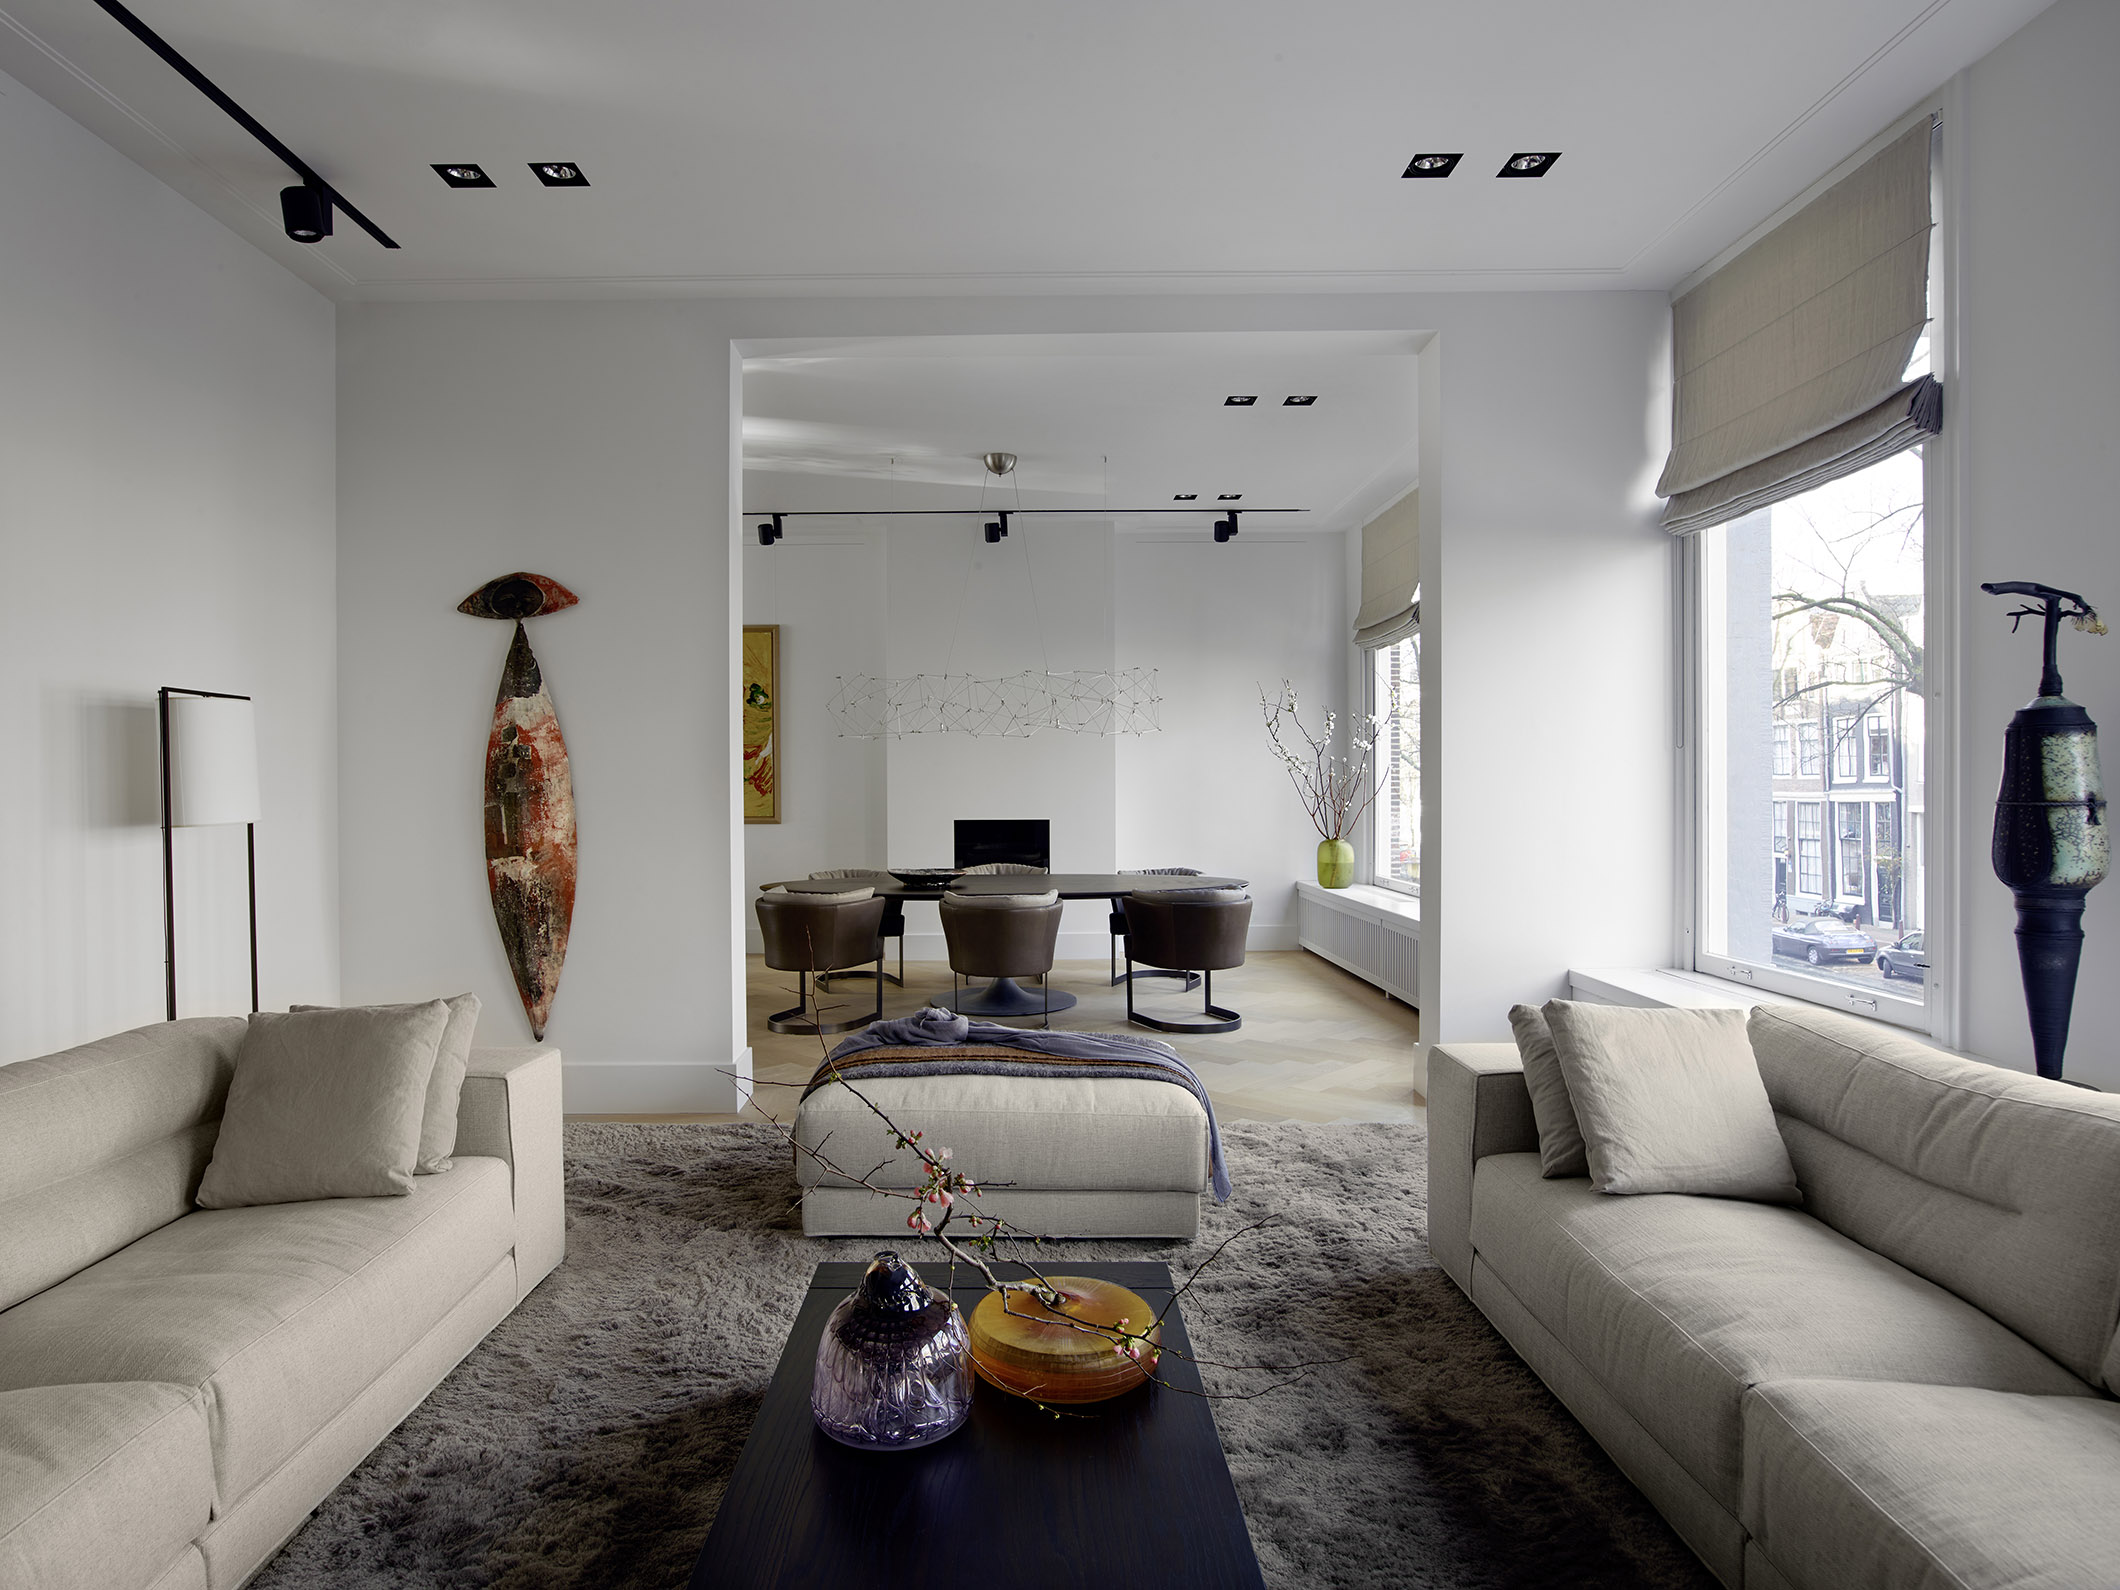 Canal house in Amsterdam with DIEKE sofa and pouf and TOOS coffee table